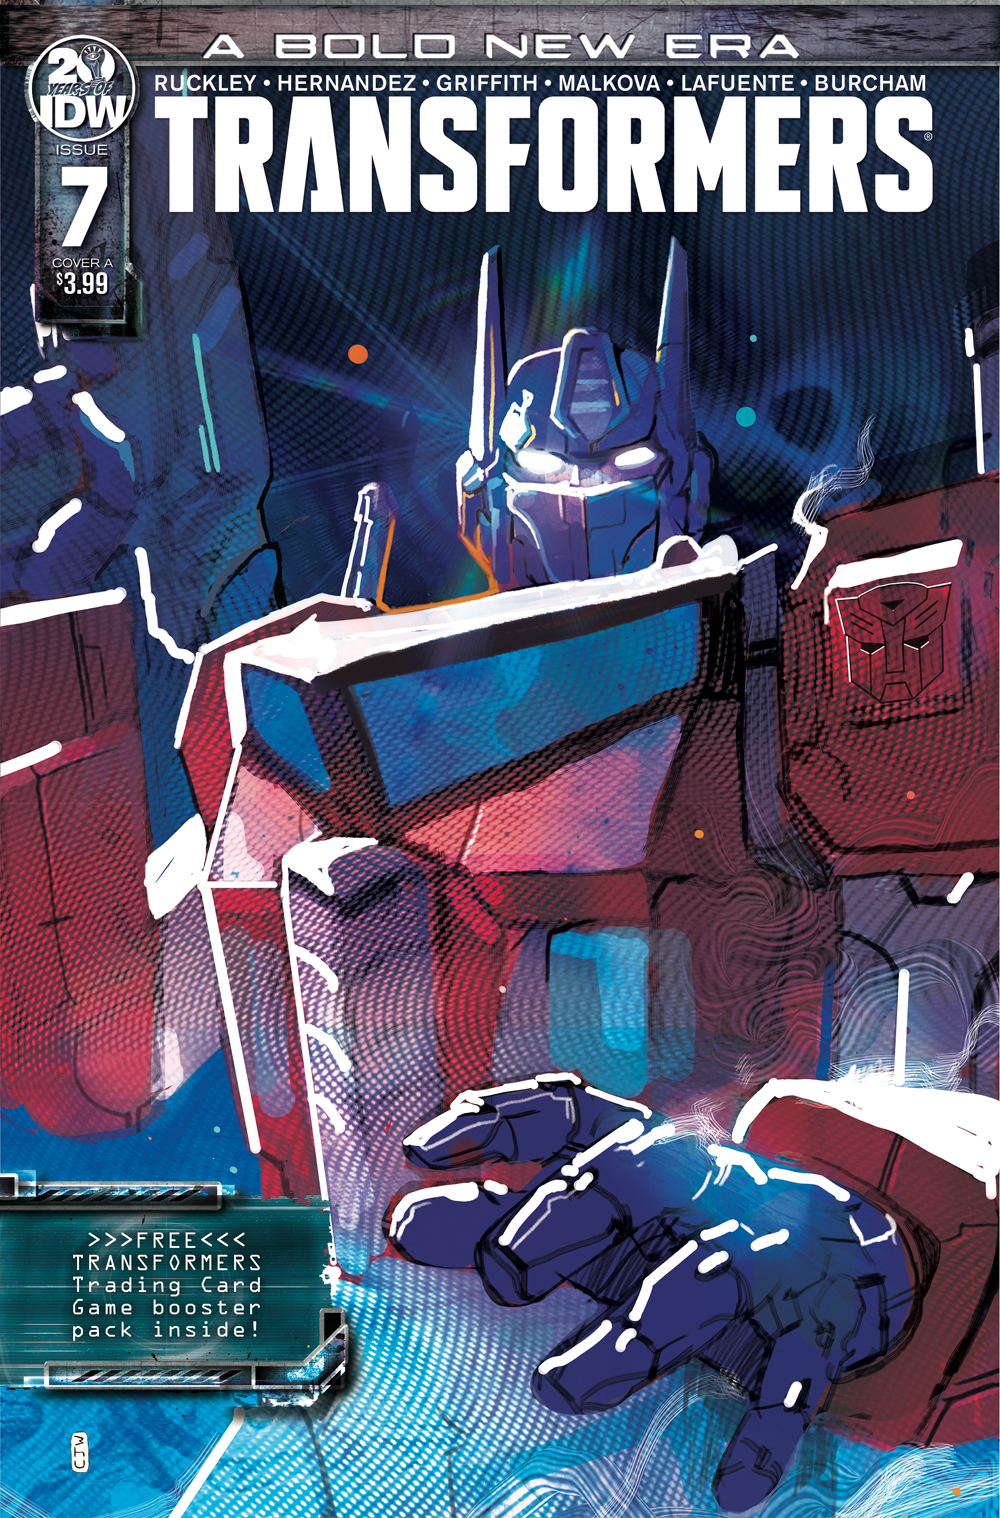 Transformers News: Re: IDW Transformers Version 2.0 General Discussion Thread